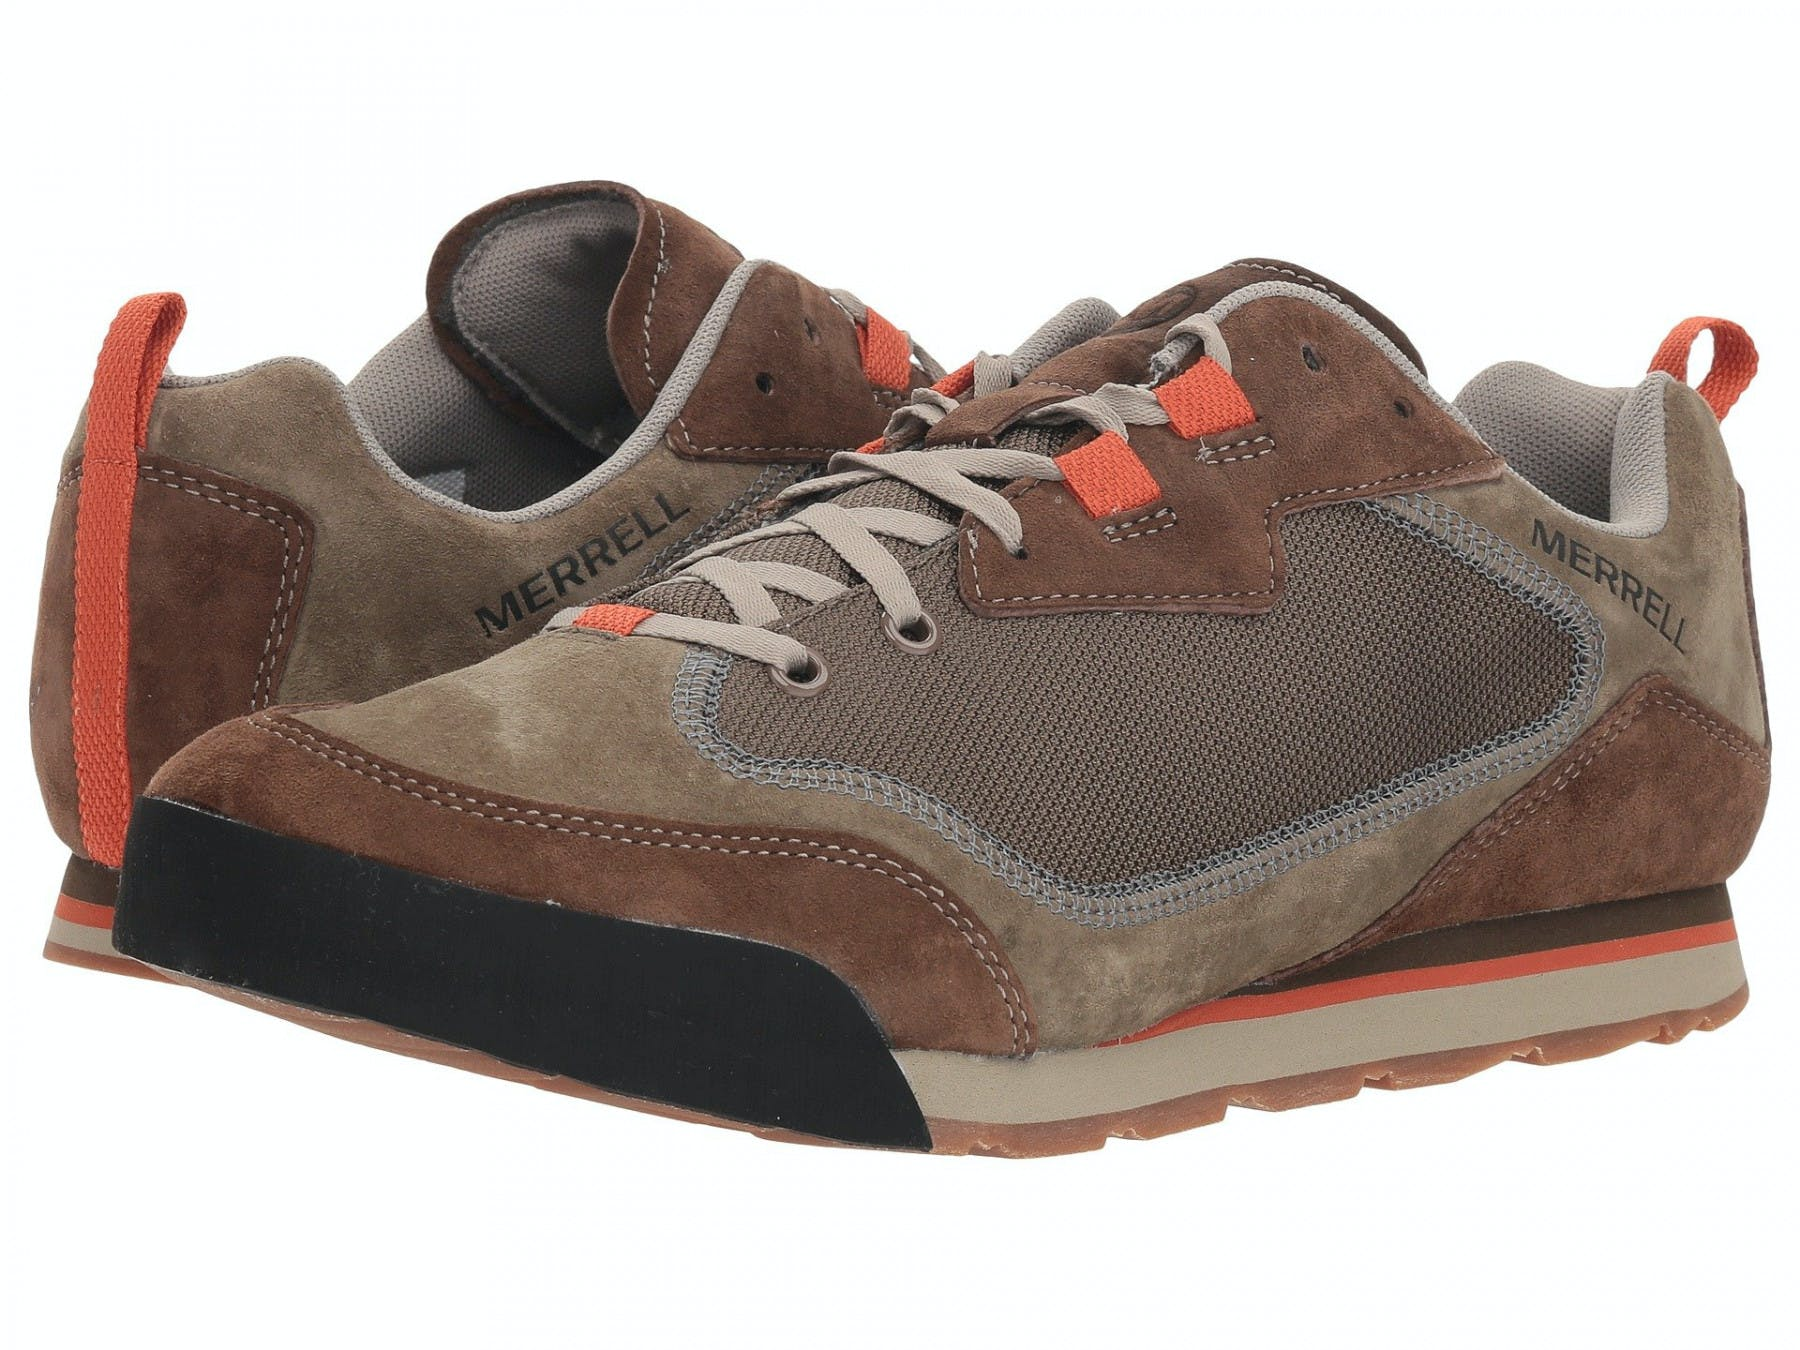 MERRELL - BURNT ROCK TRAVEL SUEDE - 9.5 - Dusty Olive